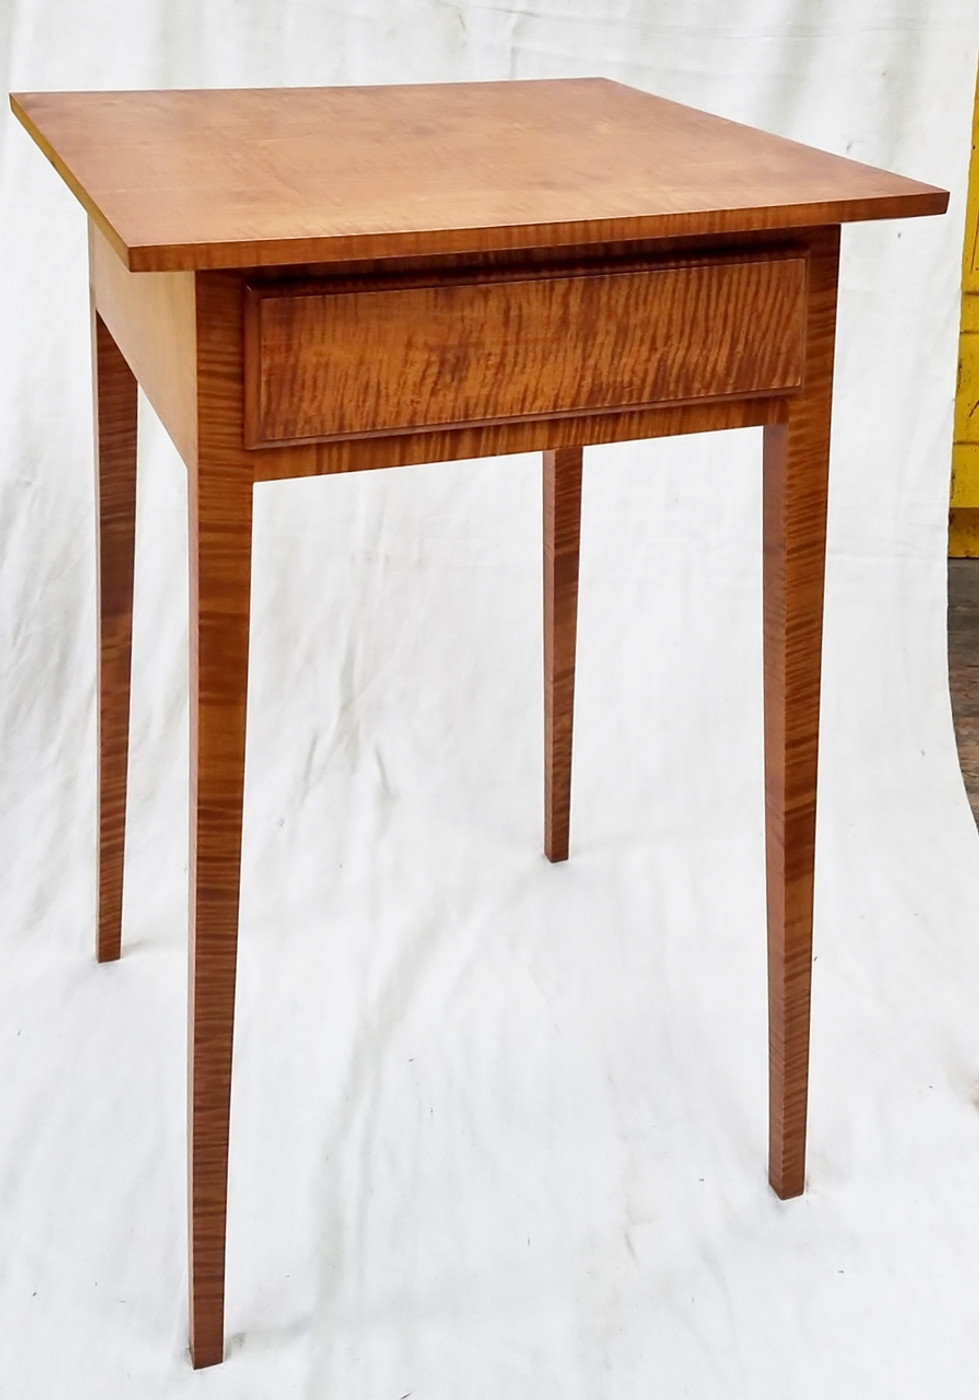 Hepplewhite Side Table with drawer